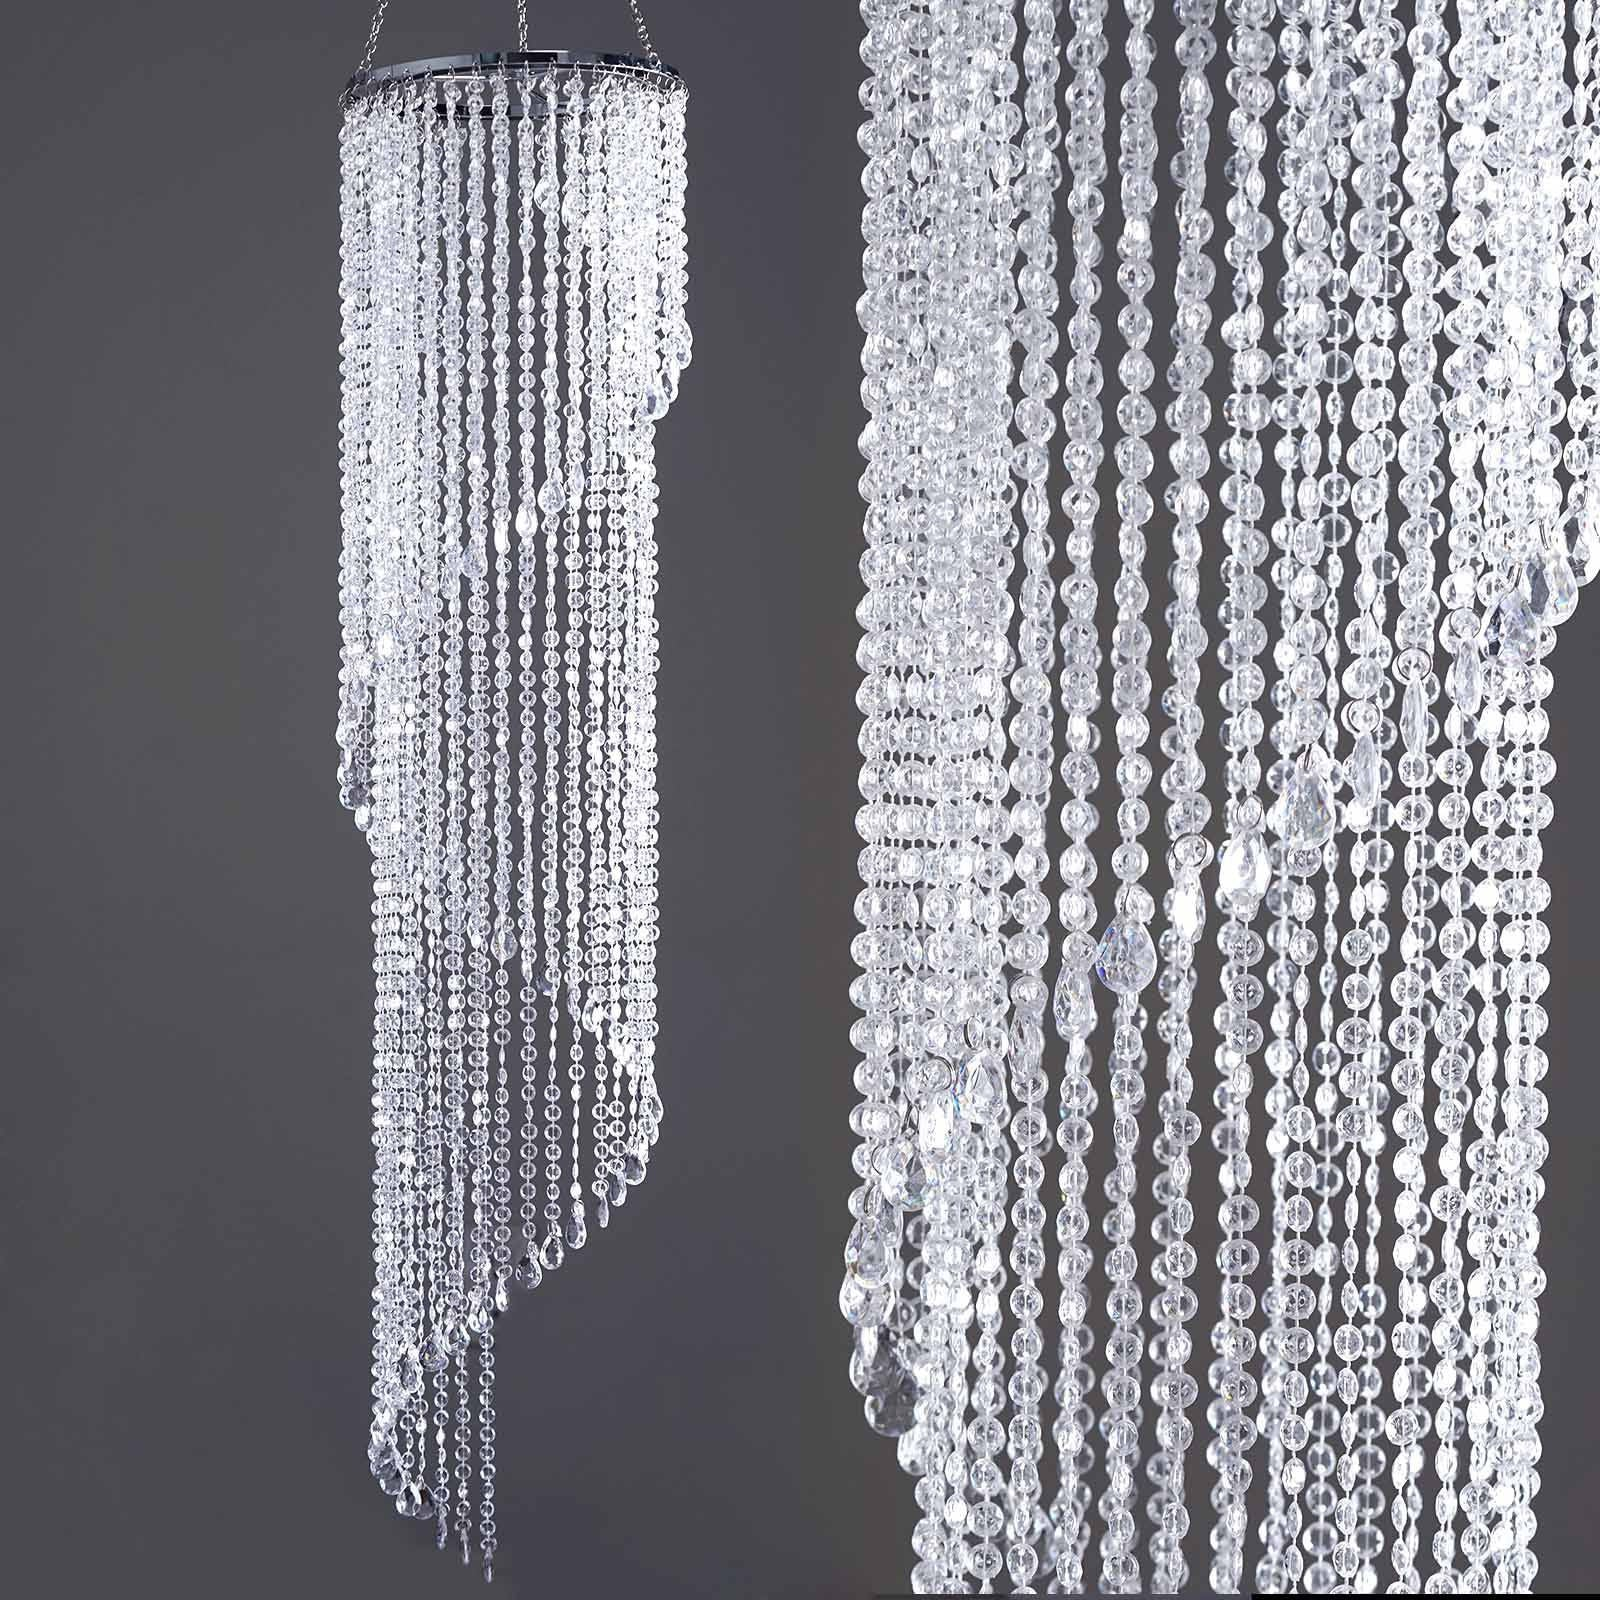 72 acrylic diamond spiral chandelier free stand poles efavormart majestic hanging acrylic spiral diamond chandelier 13inch diameter x 72inch drop aloadofball Image collections